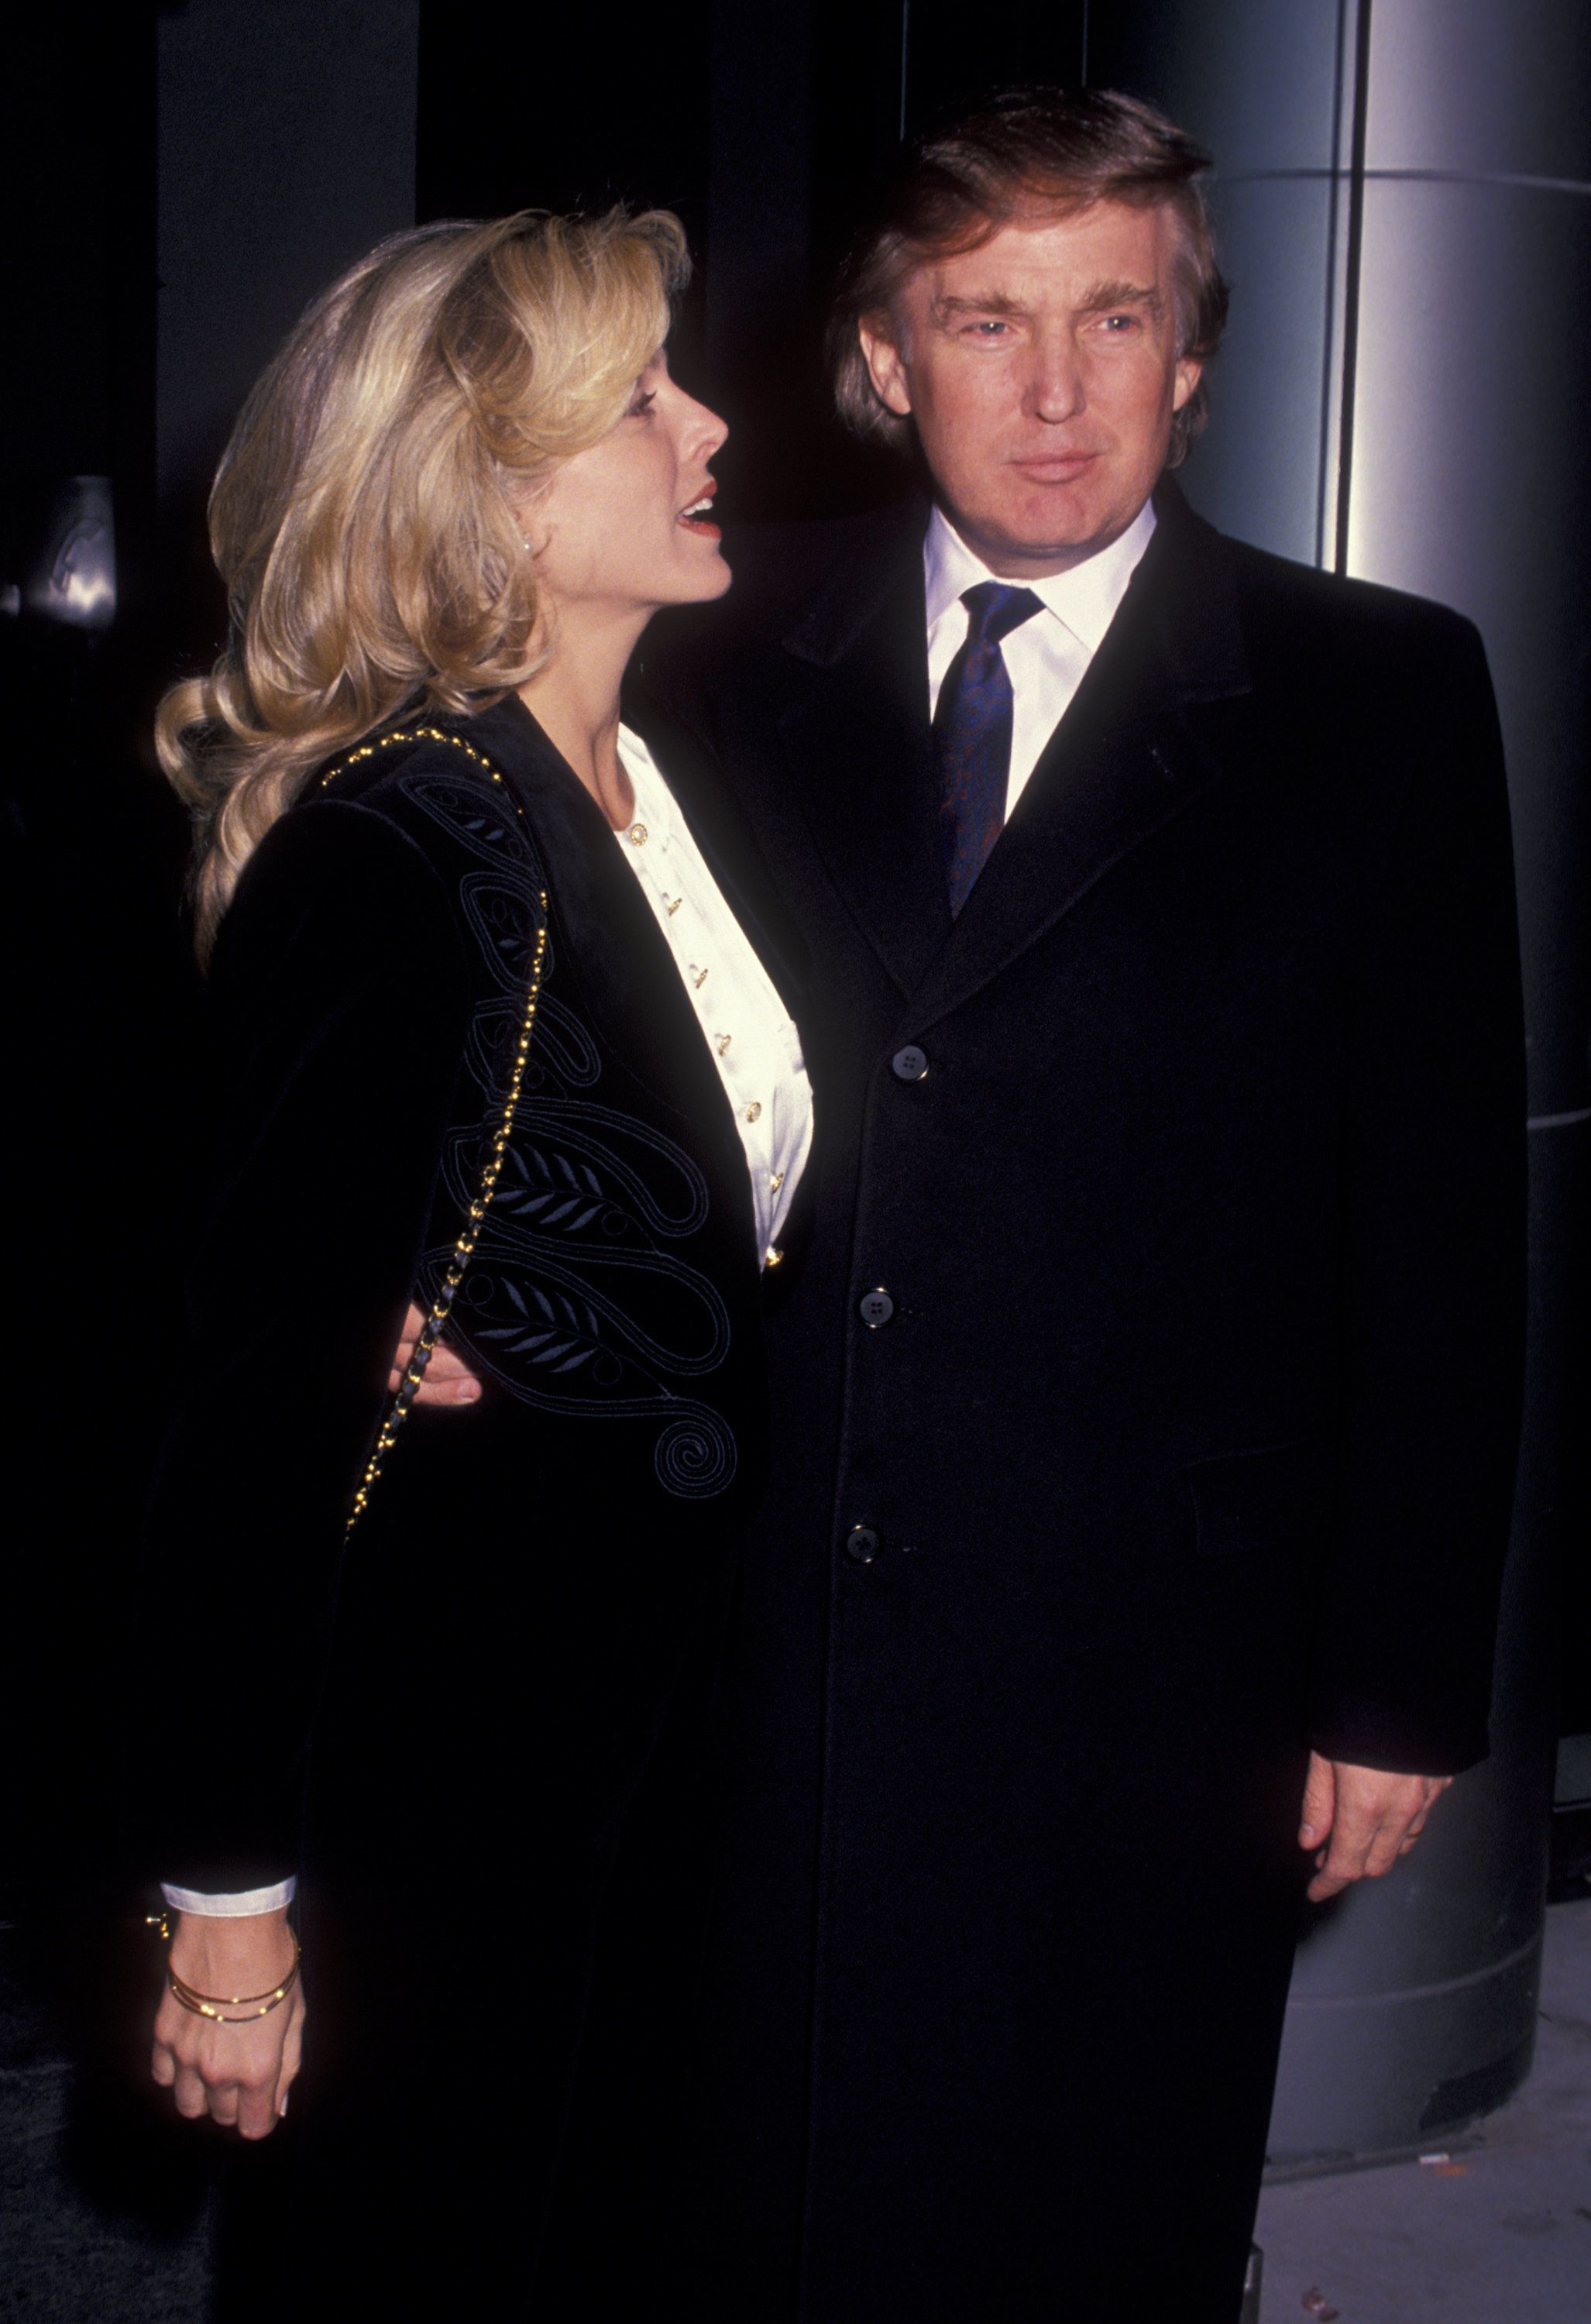 NEW YORK CITY - DECEMBER 13:  Donald Trump and Marla Maples attend 'The Jungle Book' Screening on December 13, 1994 at the Sony Lincoln Square Theater in New York City. (Photo by Ron Galella/WireImage)